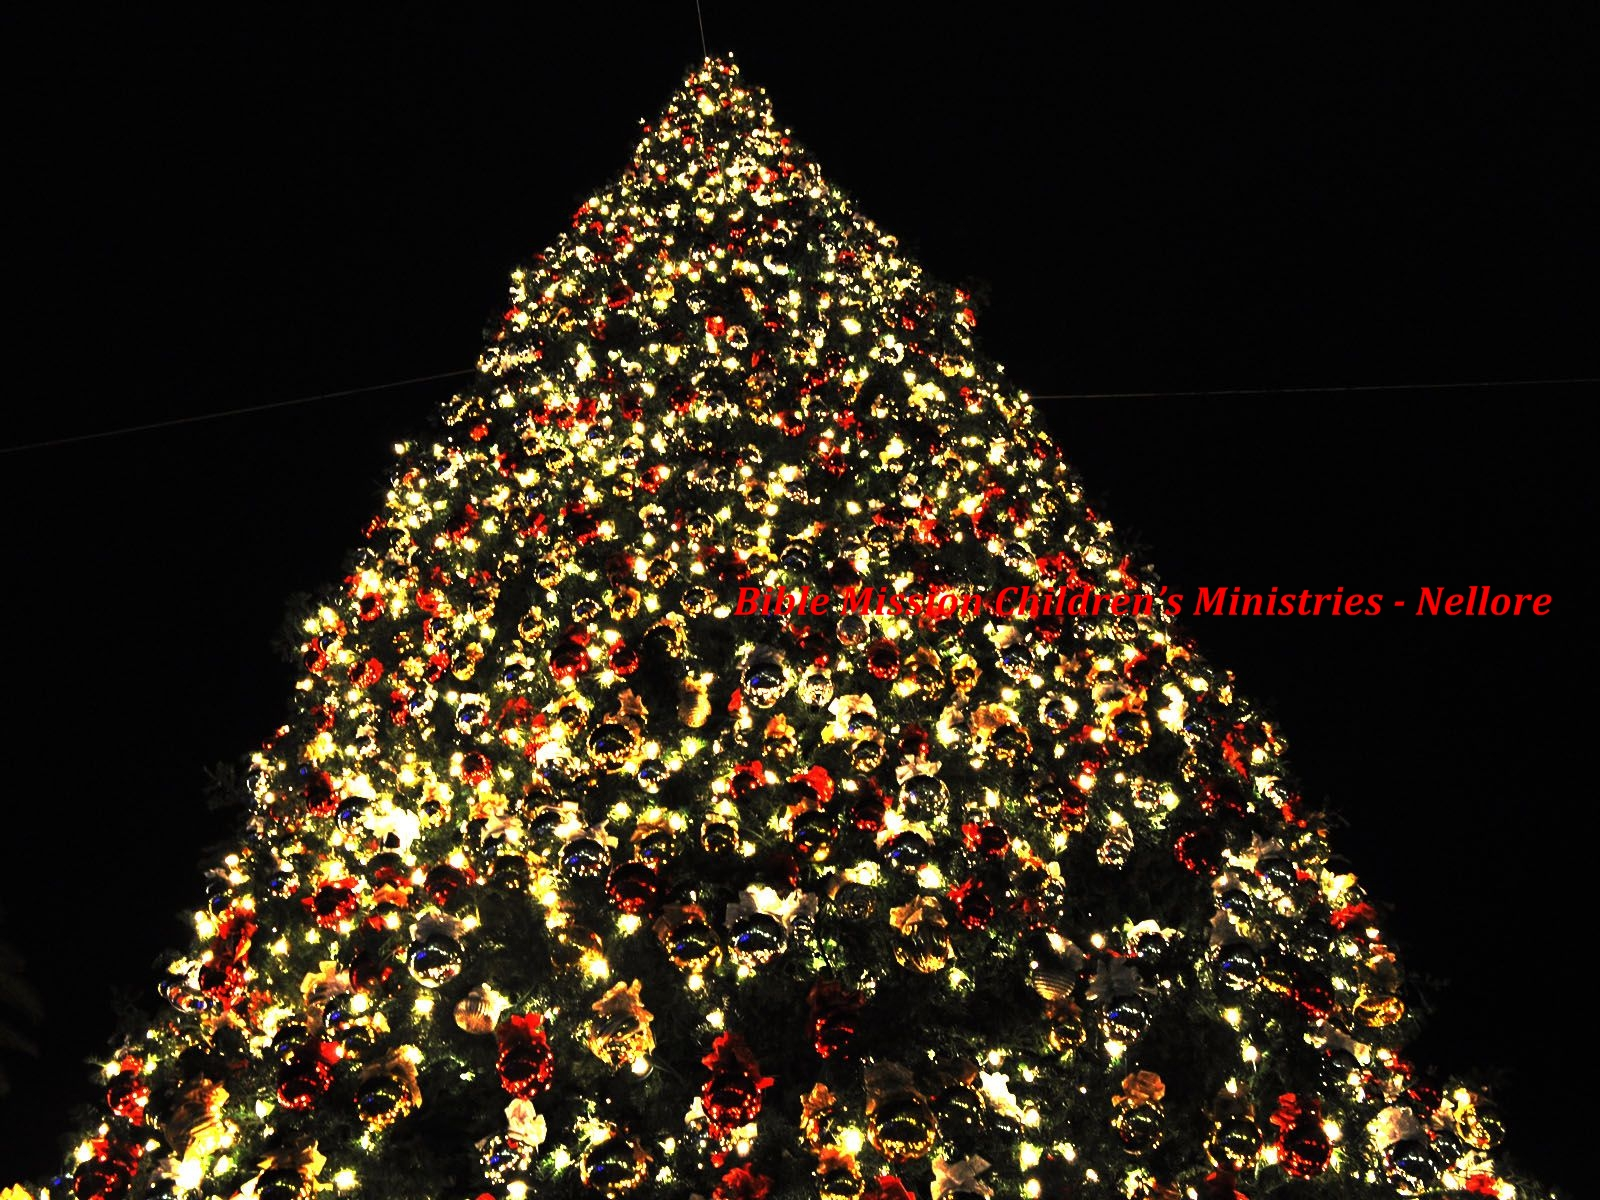 Bible mission children 39 s ministries nellore christmas for Christmas tree with large bulbs